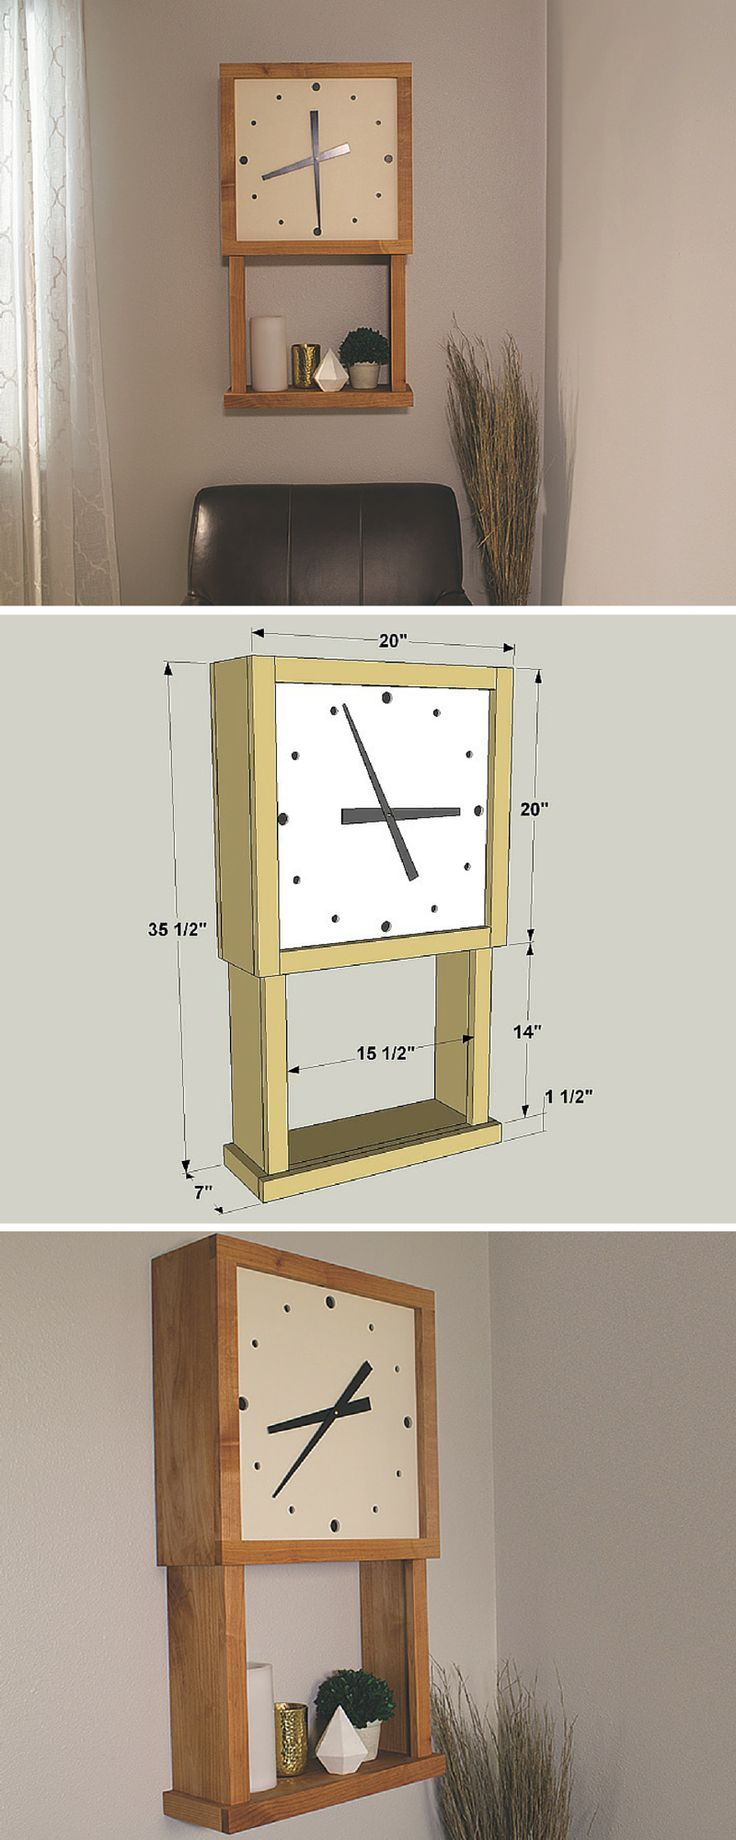 25 unique diy wall clocks ideas on pinterest scandinavian wall 25 unique diy wall clocks ideas on pinterest scandinavian wall clocks clock ideas and college wall art amipublicfo Image collections